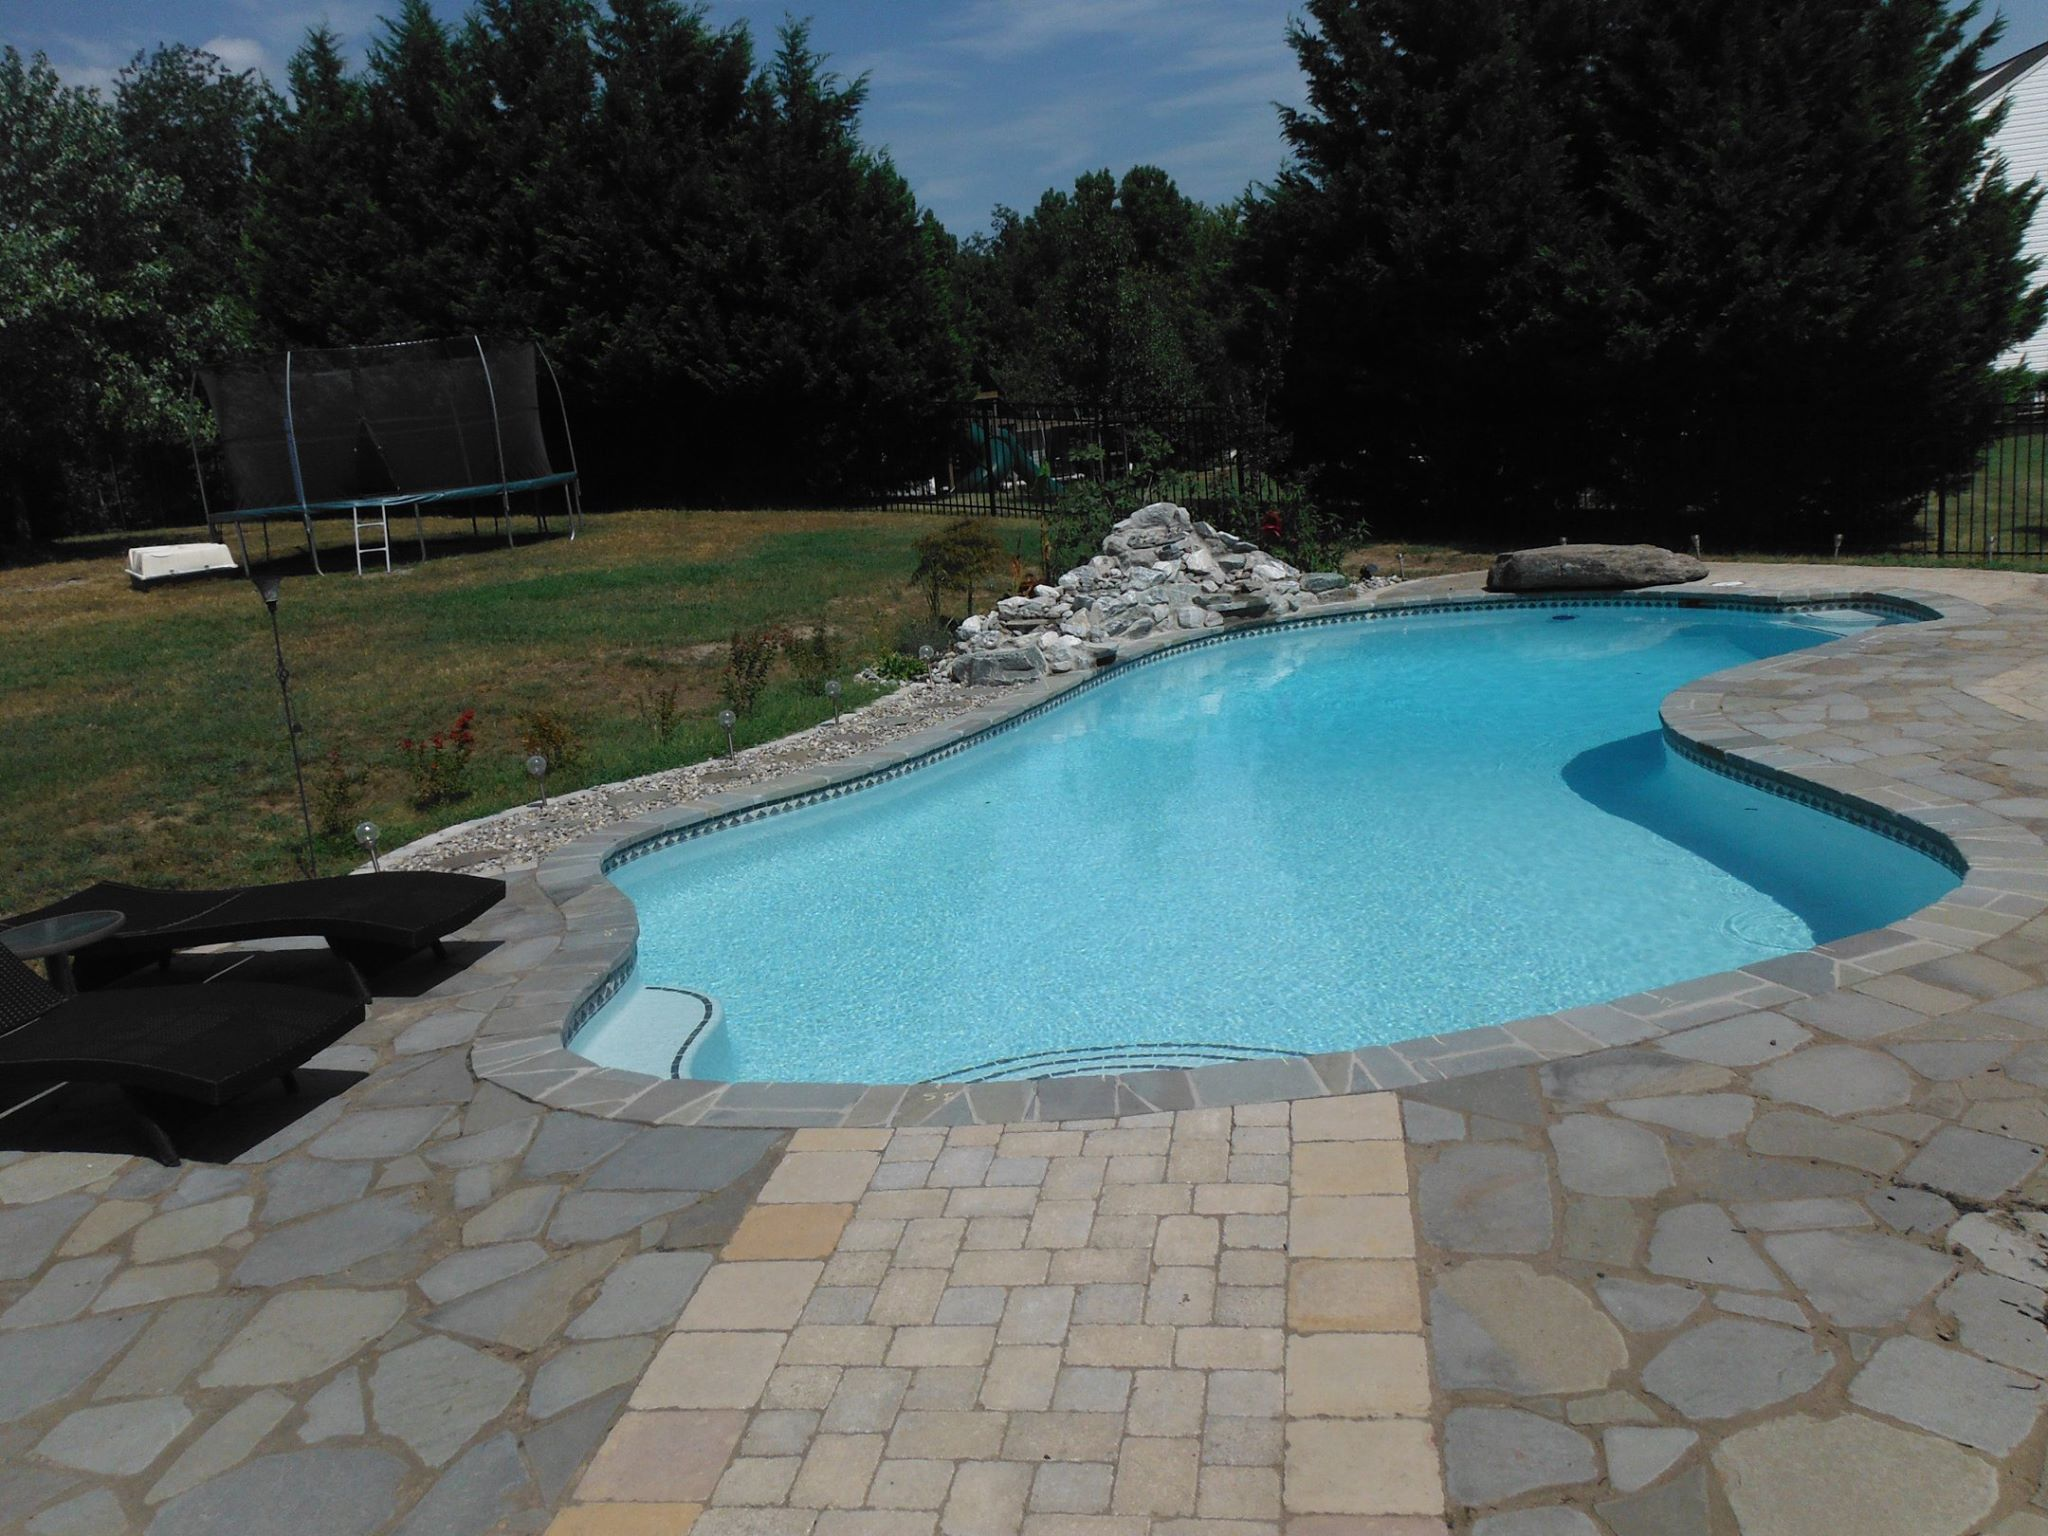 Investing in a pool, spa, paver driveway, deck or walkway adds value to your home and value to your life, so you deserve the best value and quality! Since 1989, Family Pool, Spa & Billiard Centers has delivered both to satisfied customers in the Jacksonville area. They want you to have the best possible experience, with affordable prices and the finest quality products! Contact Family Pool, Spa & Billiard Centers today for free designs and estimates! 9044946000 http://www.familypool.com/